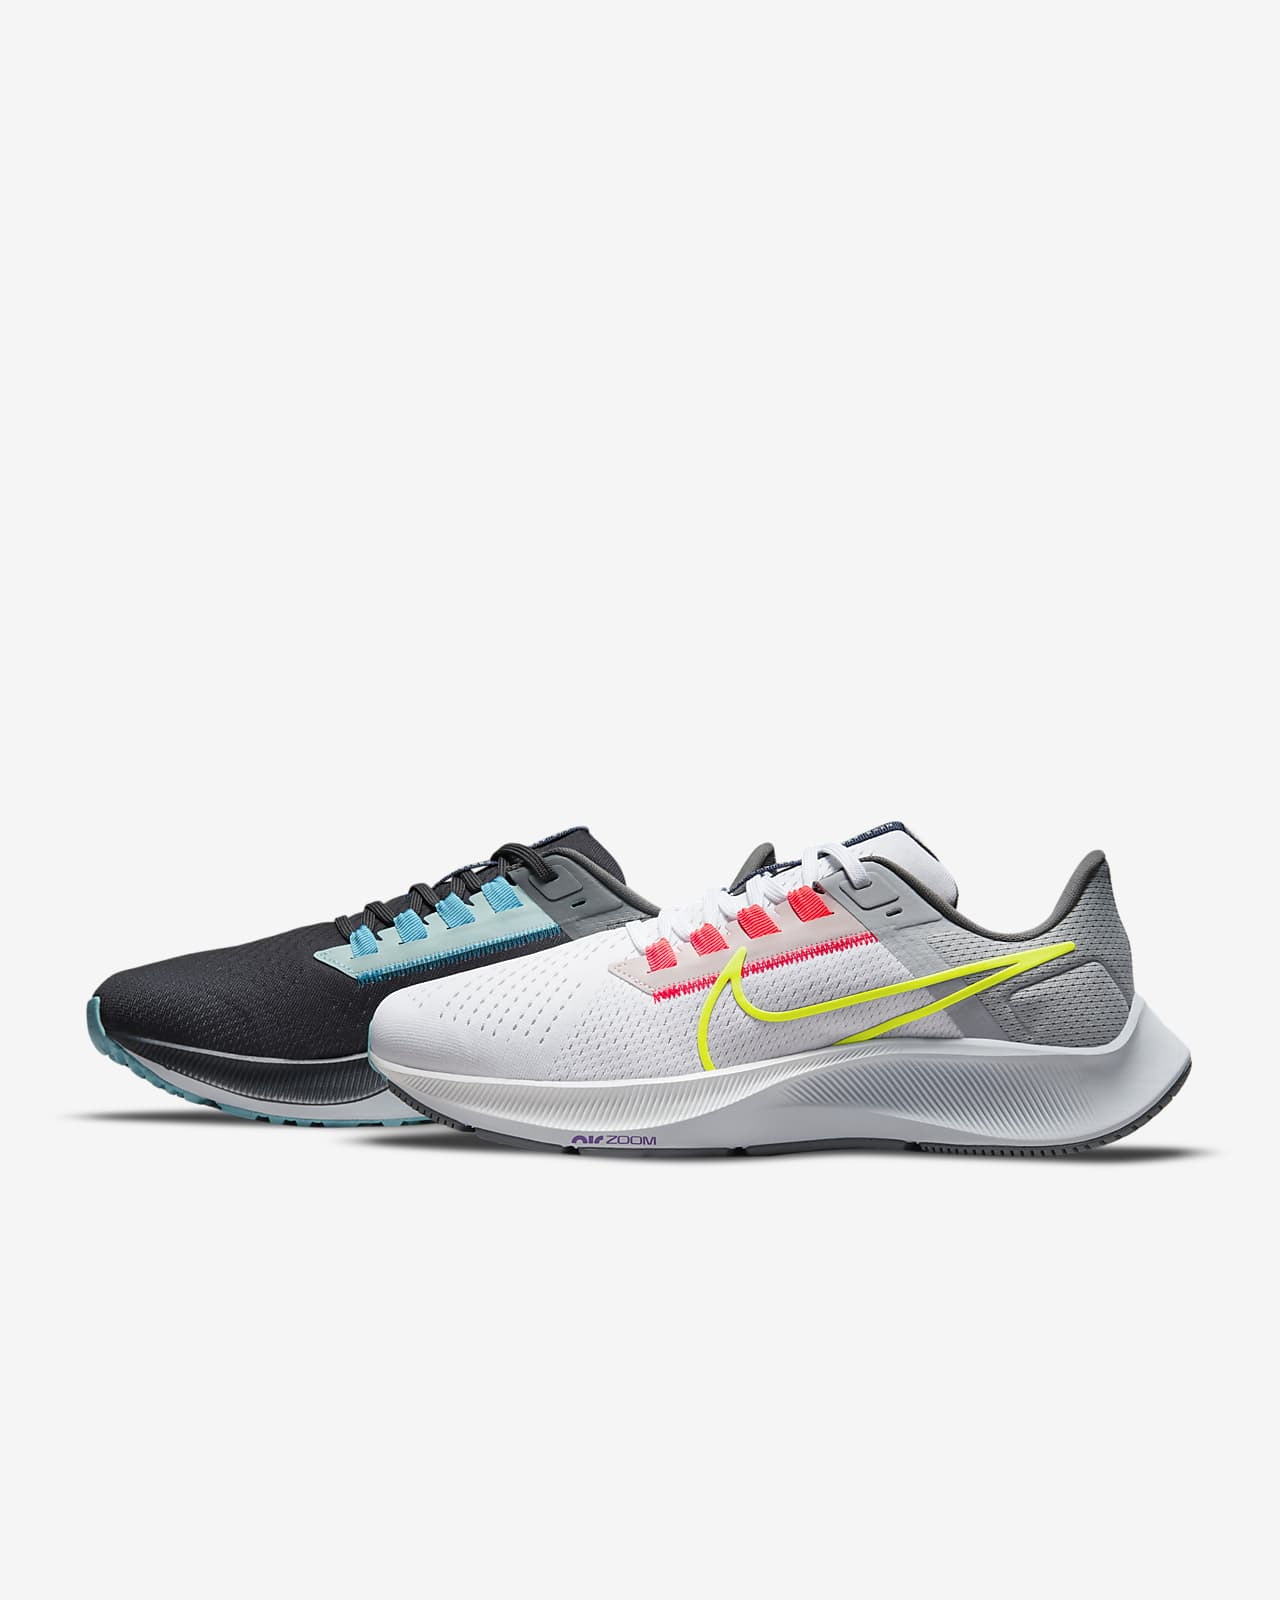 Chaussure de running Nike Air Zoom Pegasus 38 Limited Edition pour Femme